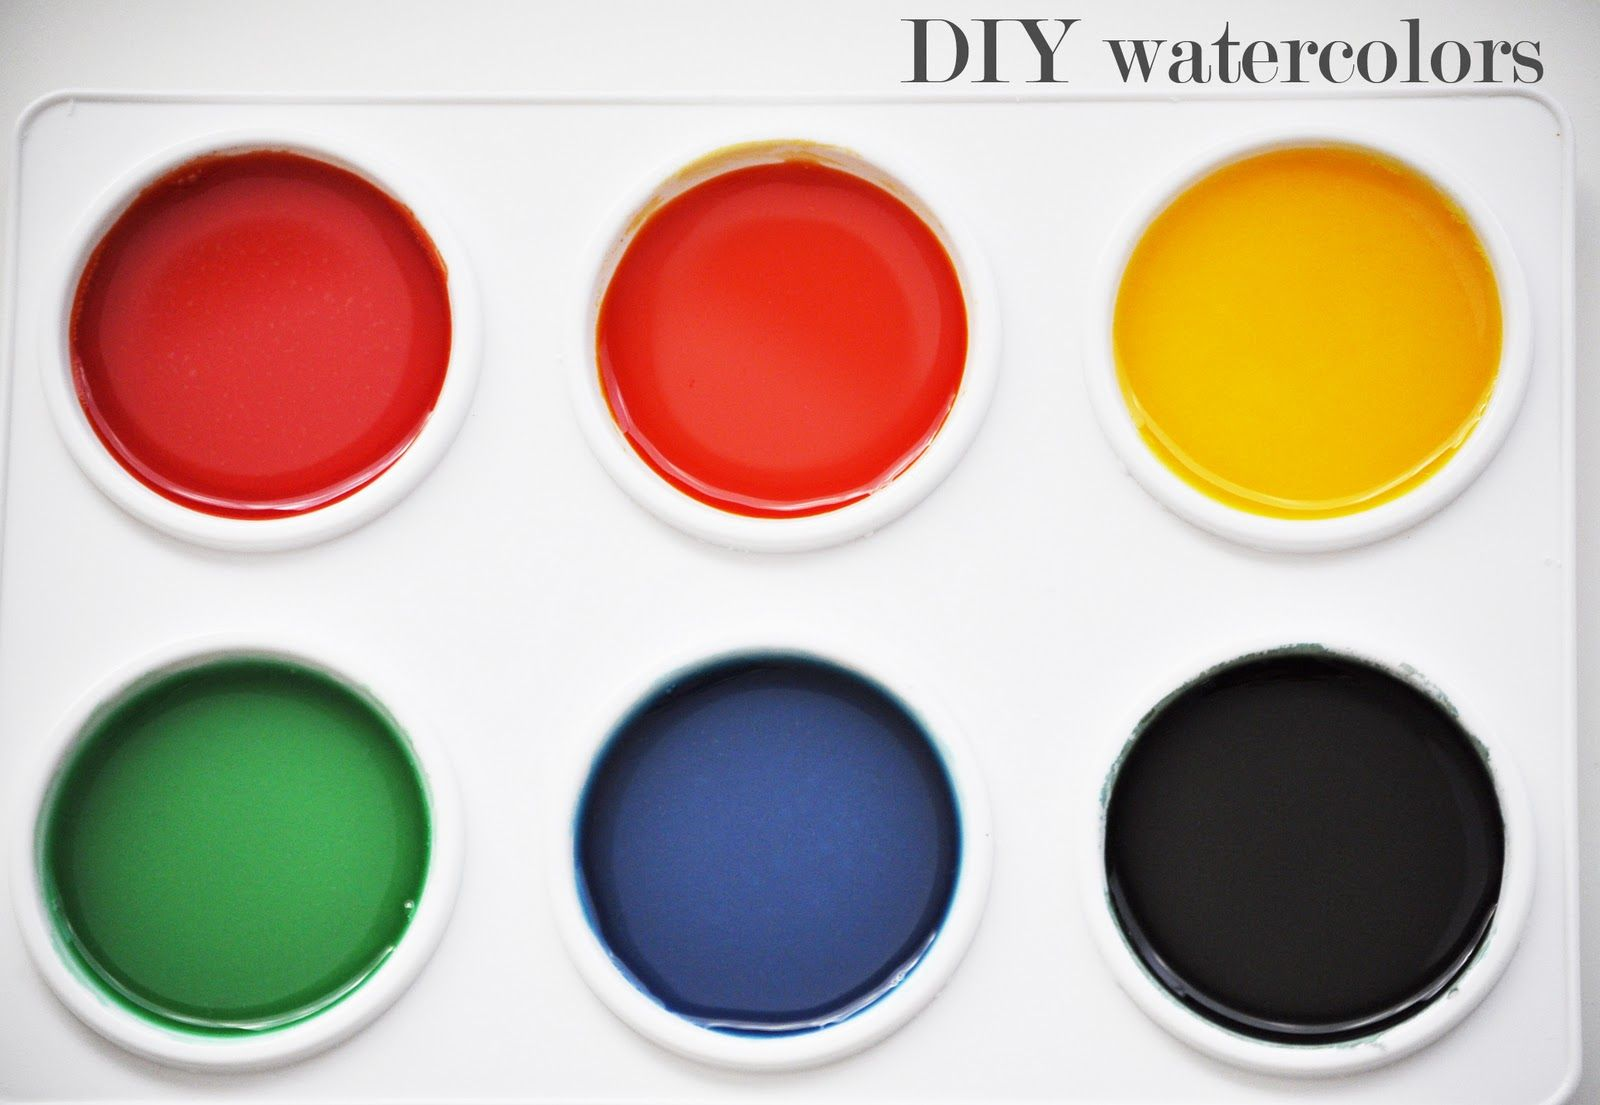 Diy Watercolor Paints Homemade Watercolors Homemade Art Diy